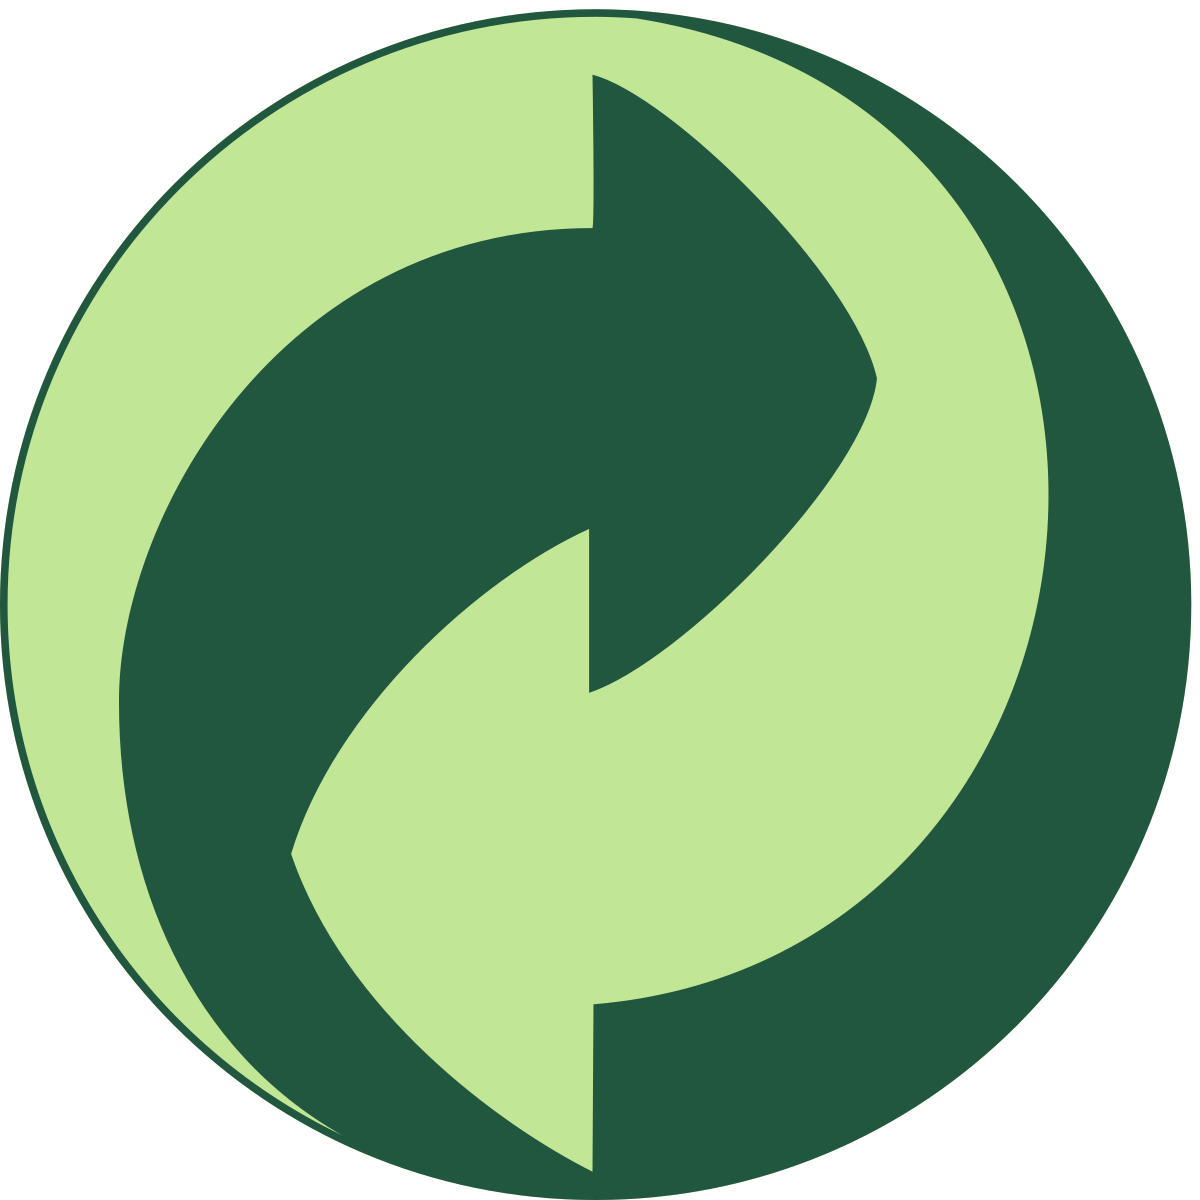 Germany's Green Dot Symbol